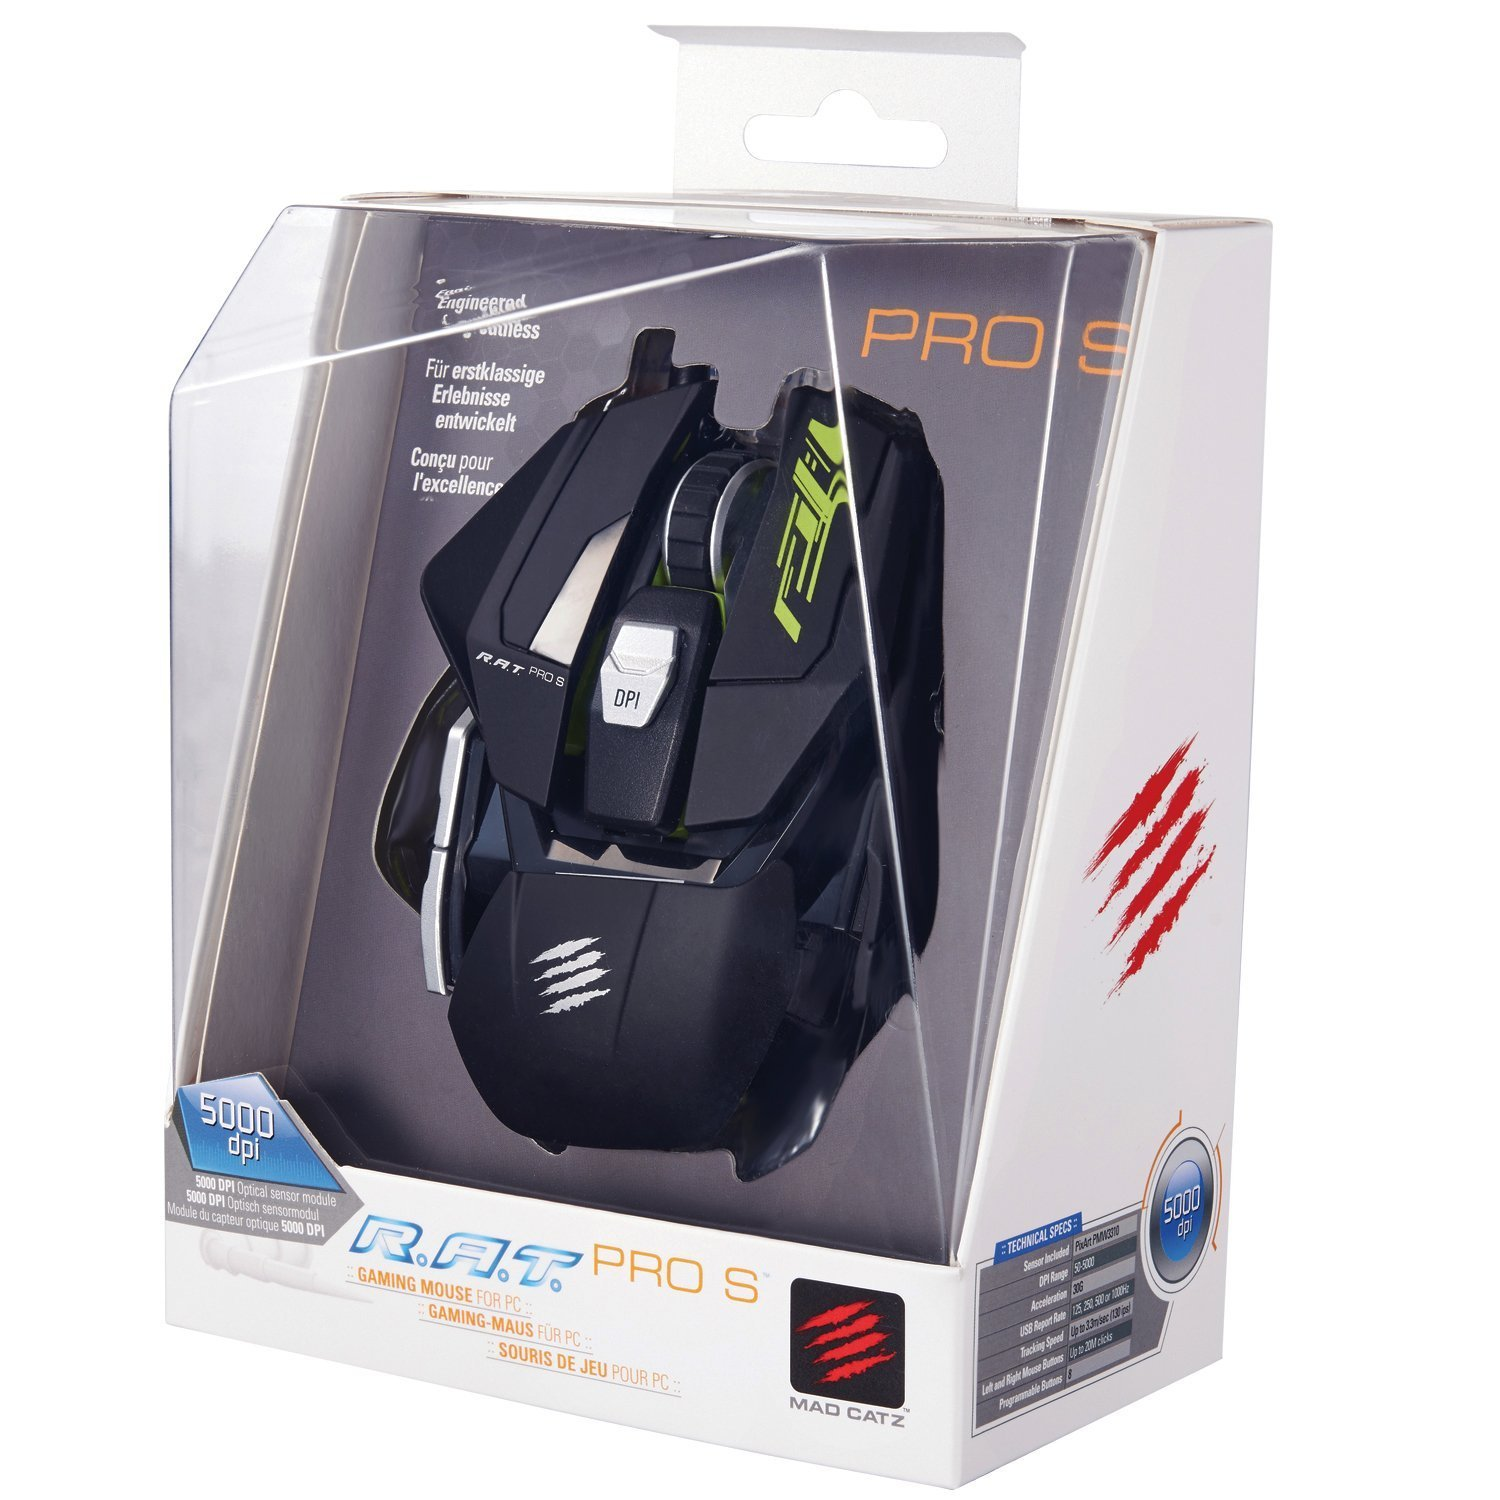 Amazon Mad Catz R A T PRO S Gaming Mouse for PC MCB A6 04 1 puters & Accessories